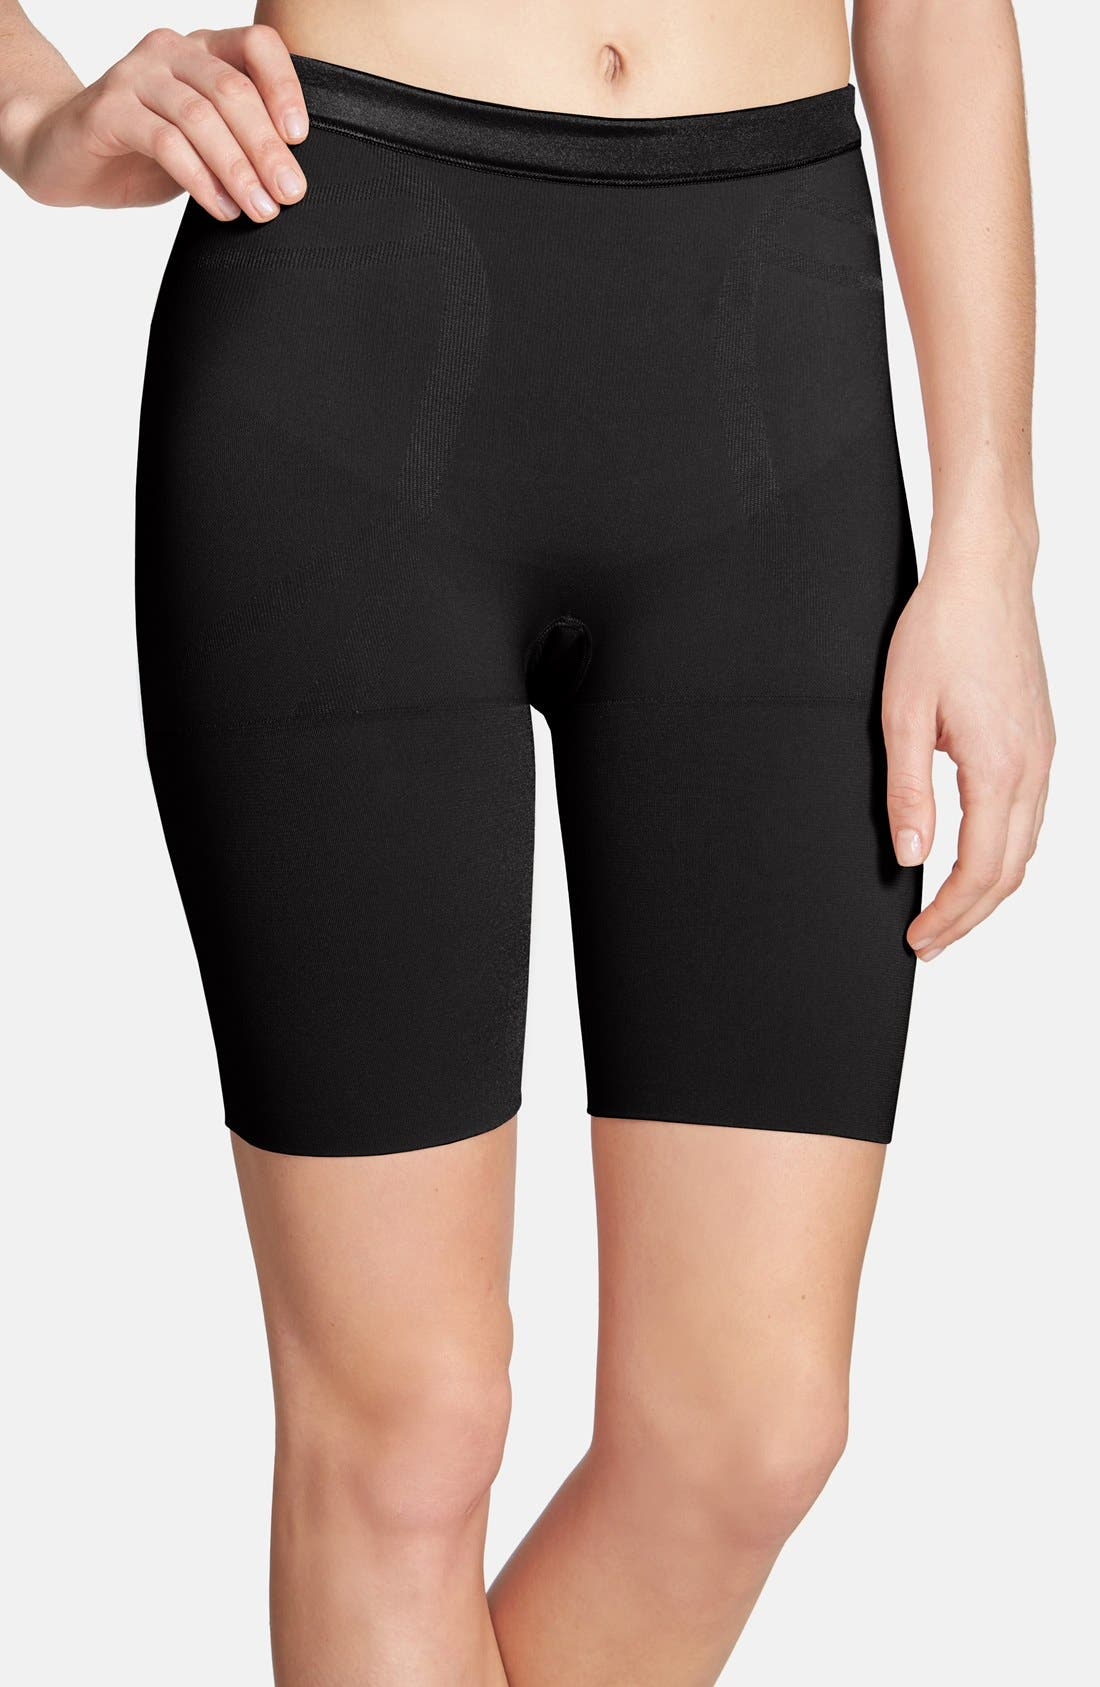 Alternate Image 1 Selected - SPANX® 'Slimmer & Shine' Mid Thigh Shaper